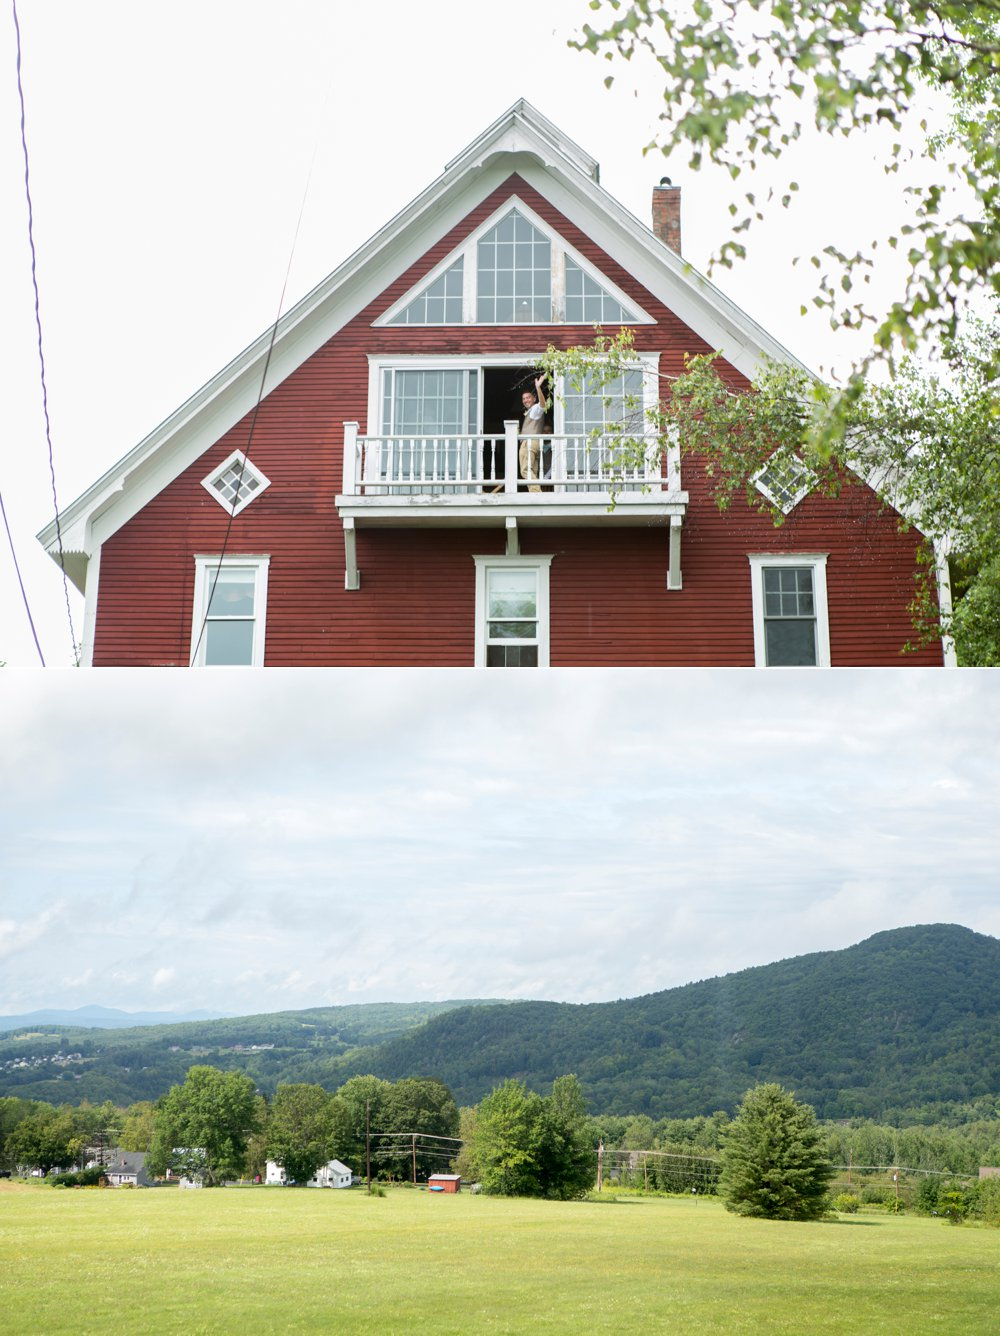 SomerbyJonesPhotography_VermontWedding_CyrBarn_CryBarnWedding_0010.jpg